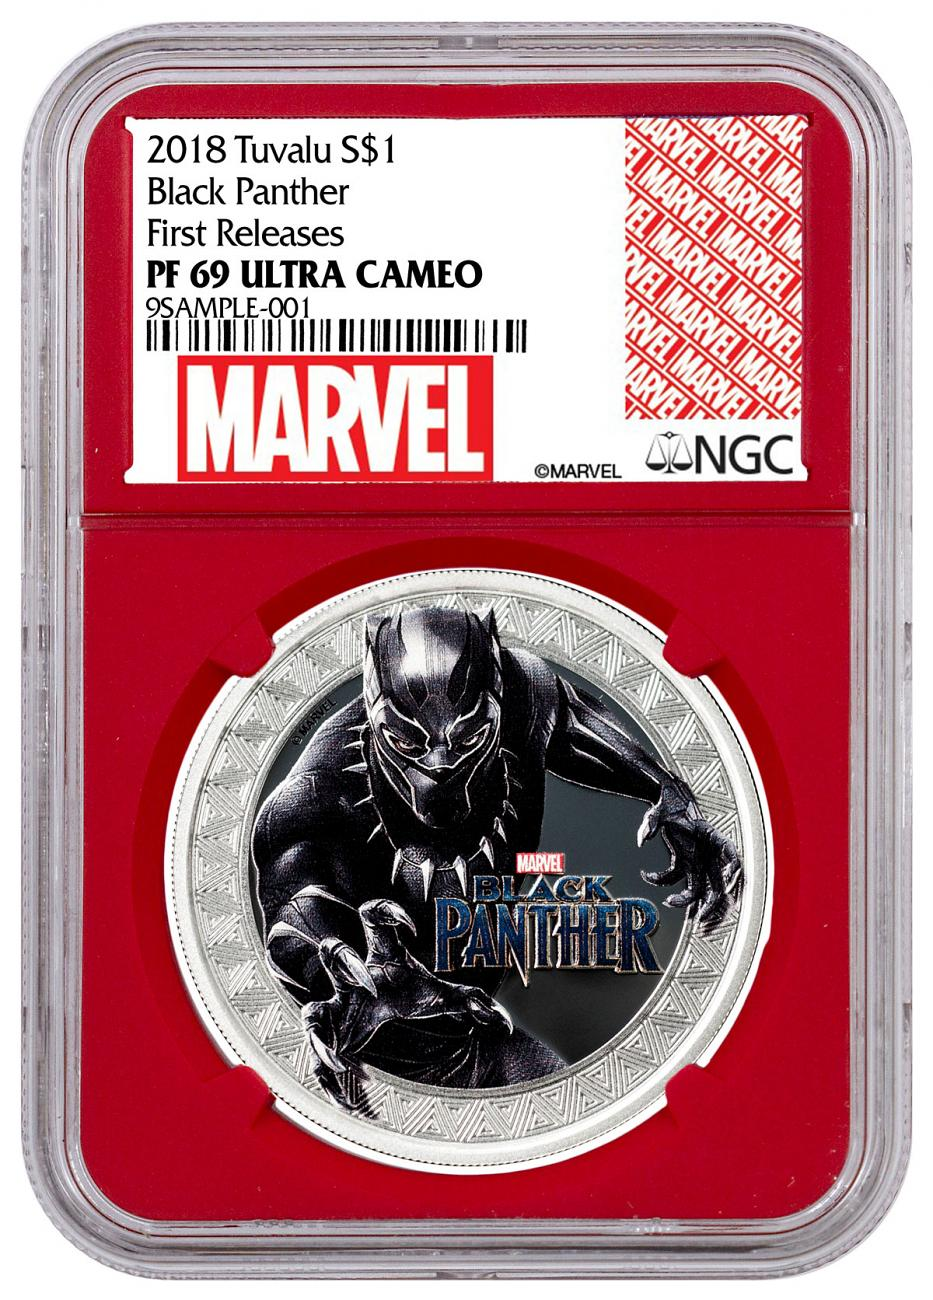 2018 Tuvalu Marvel Series - Black Panther 1 oz Silver Colorized Proof $1 Coin NGC PF69 UC FR Red Core Holder Exclusive Marvel Label